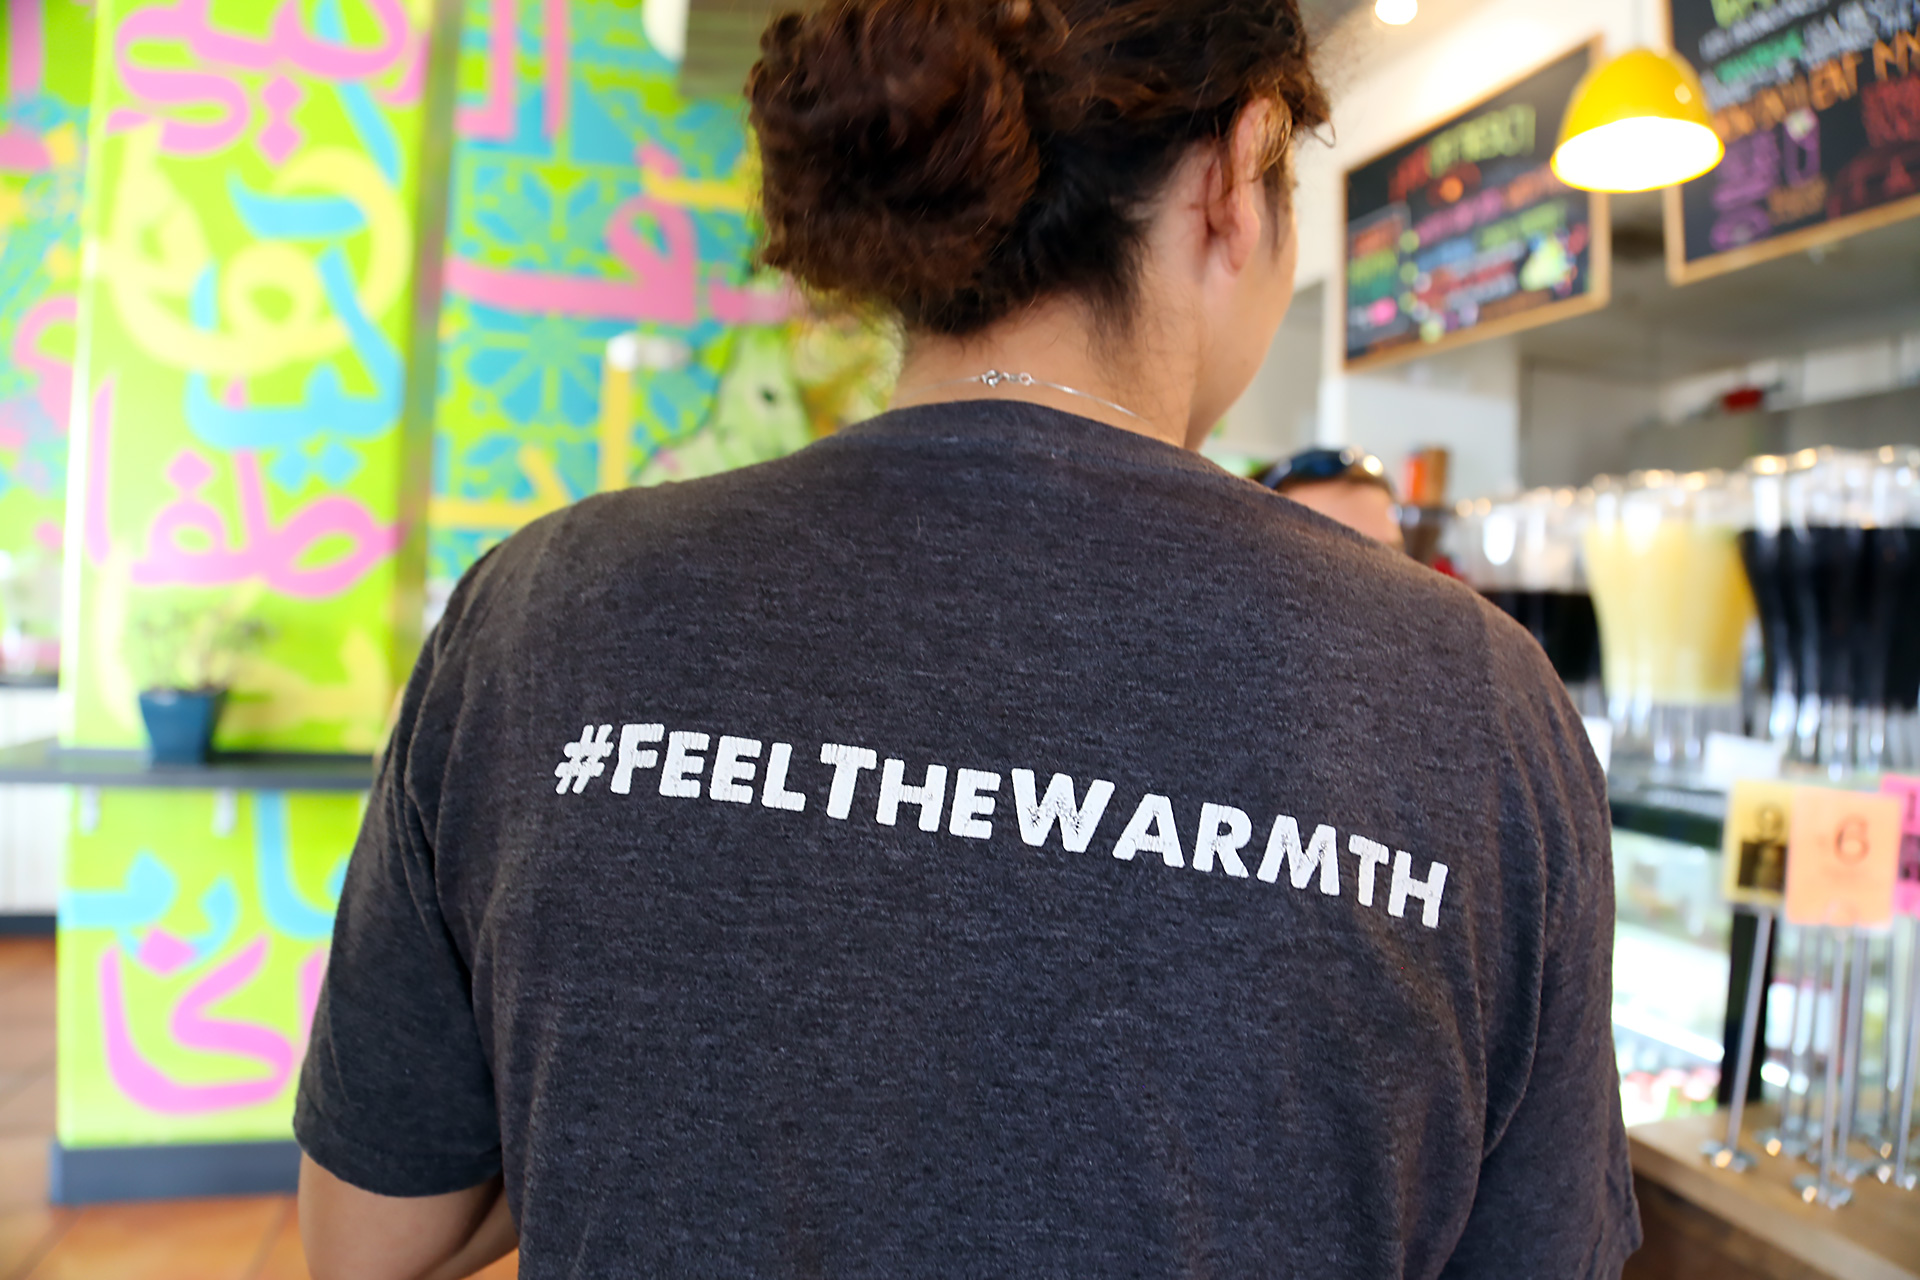 #FEELTHEWARMTH at Reem's. Reem Assil, the Chef-Owner wearing her restaurant's t-shirt.